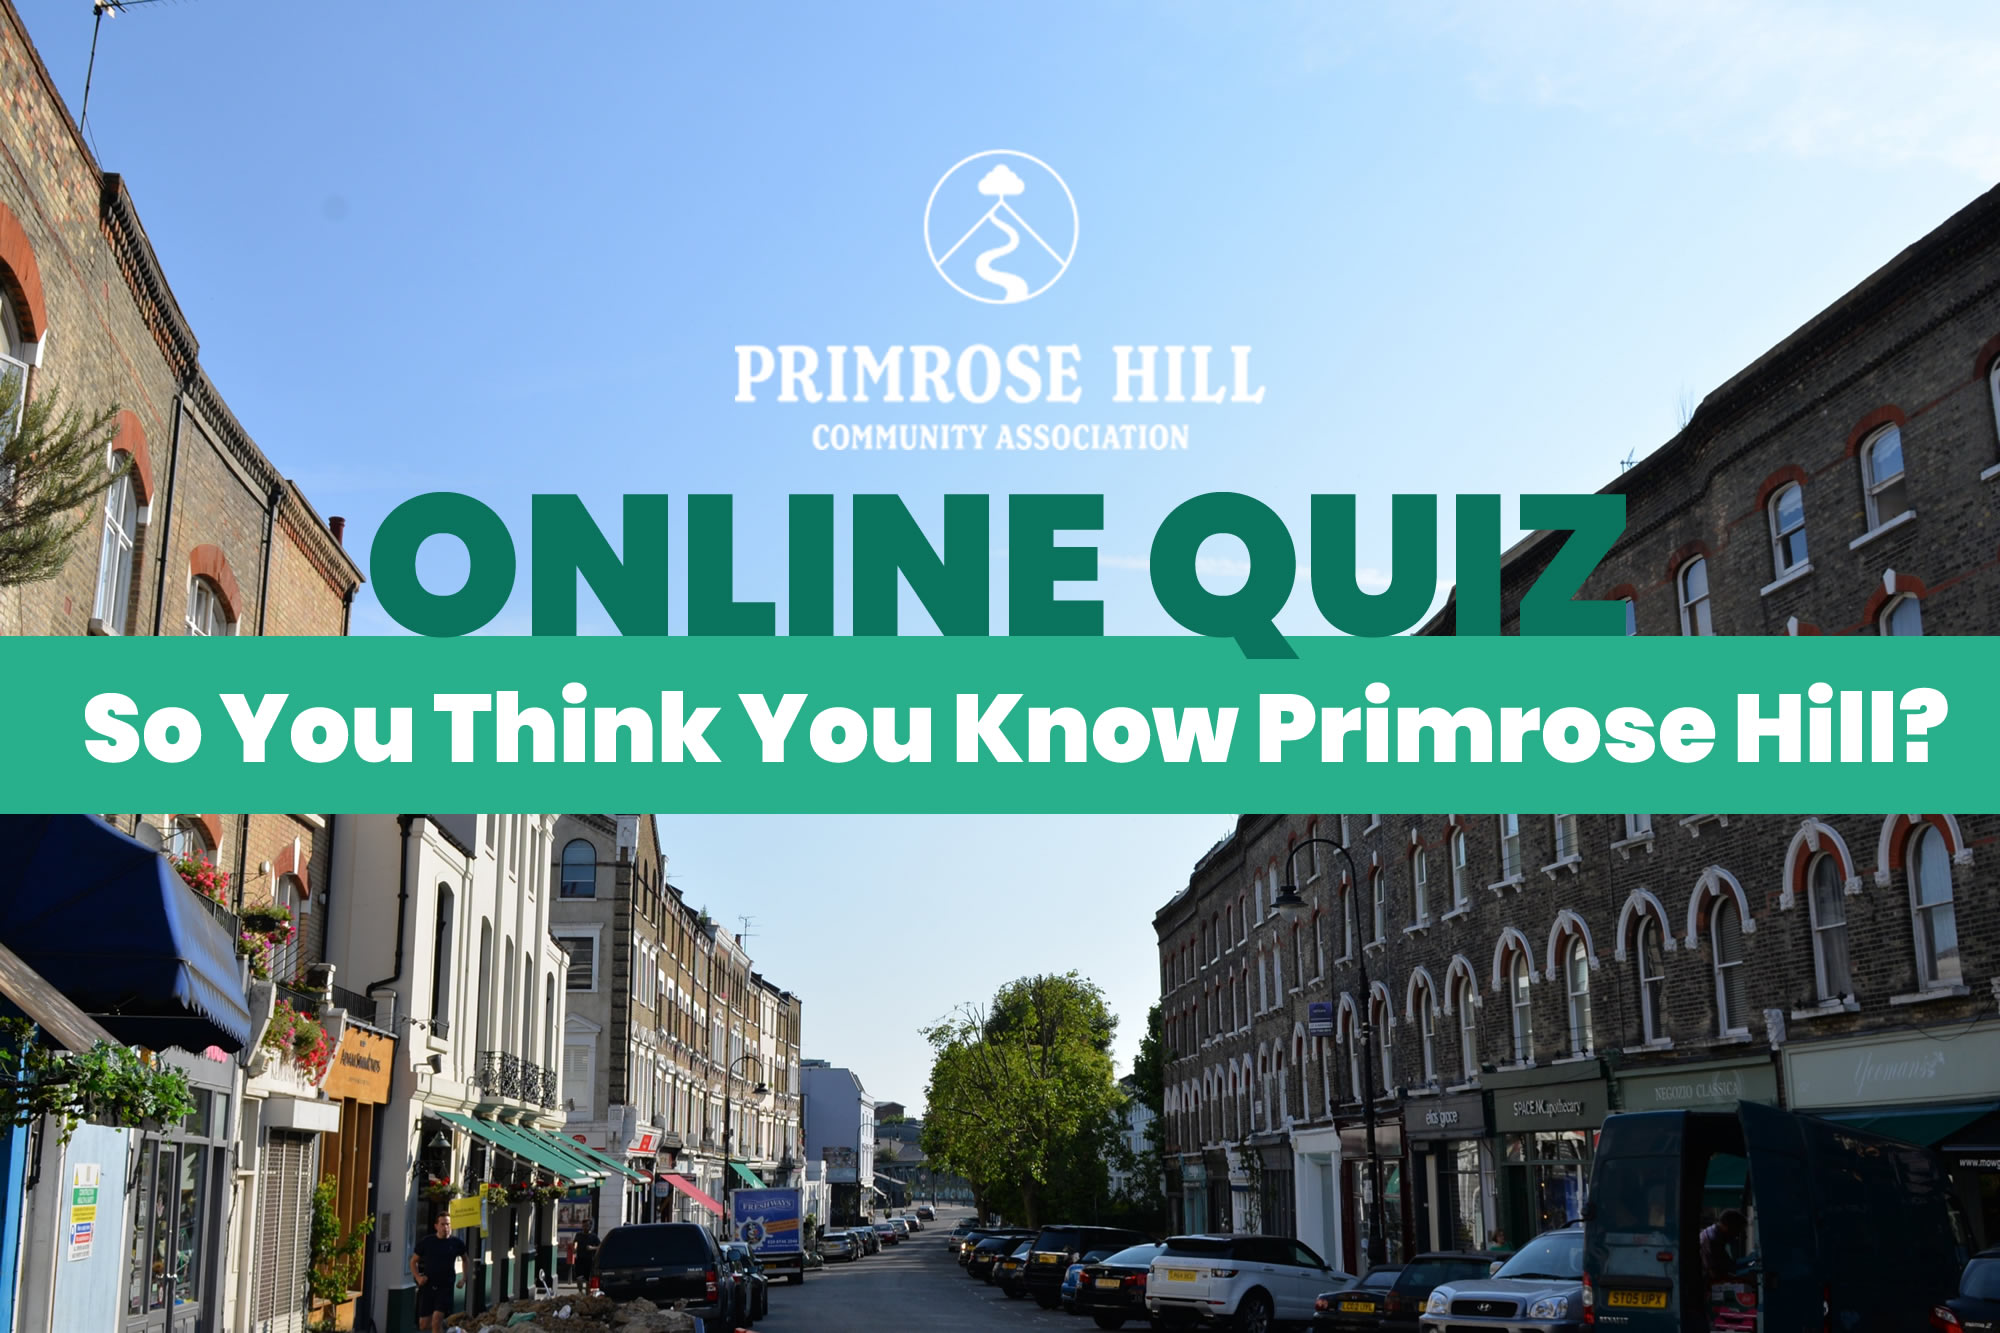 Quiz - So You Think You Know Primrose Hill?